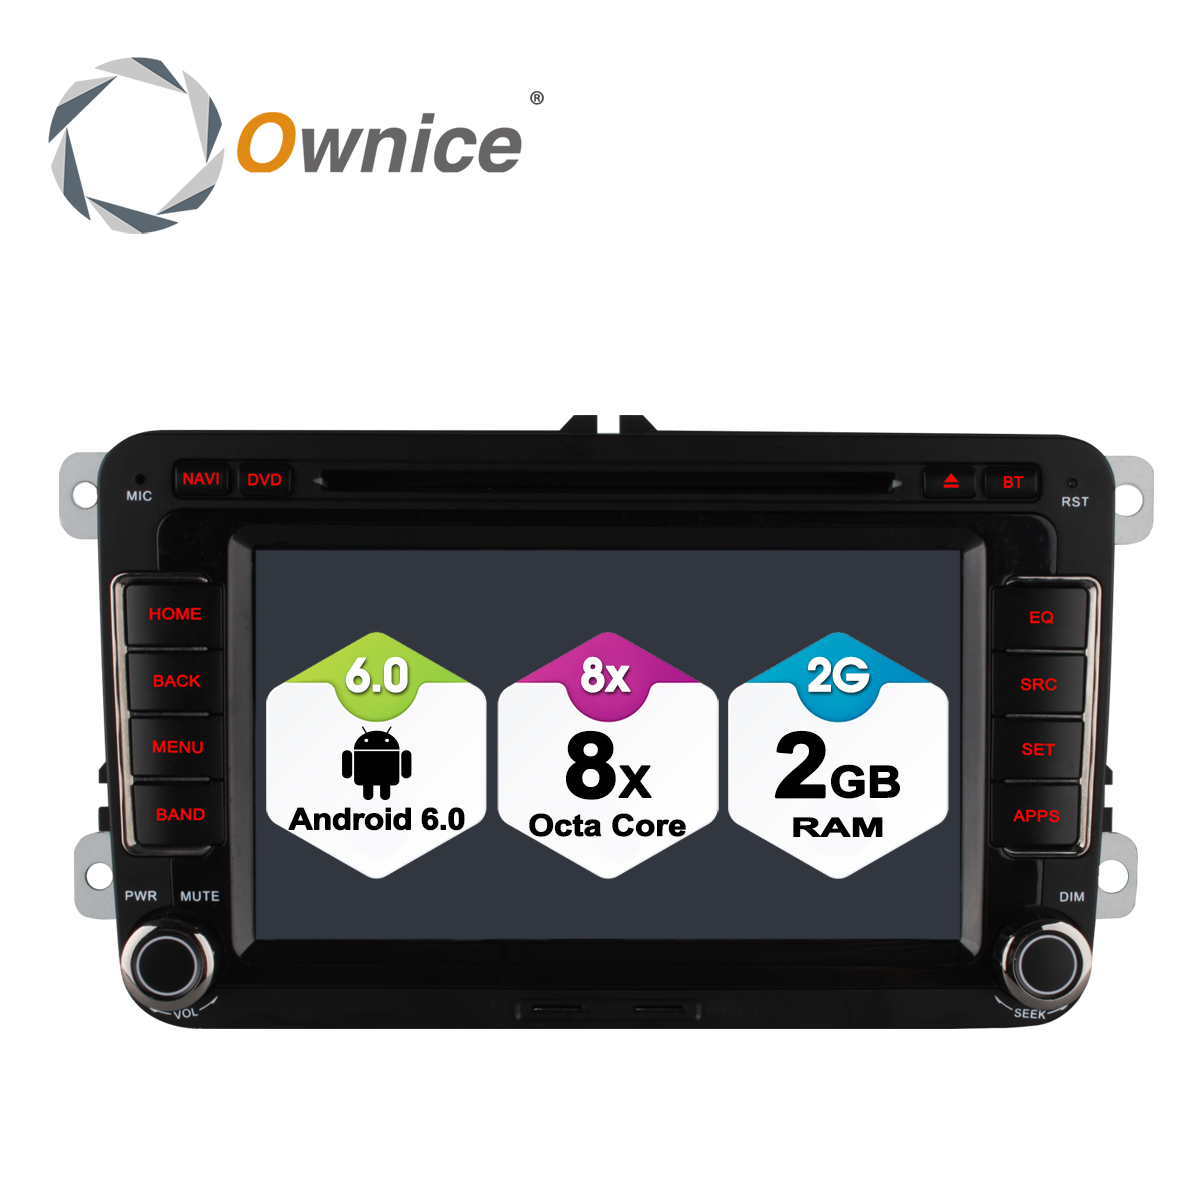 Ownice C500 8 Core Android 6 0 32G ROM radio car dvd player for Volkswagen passat